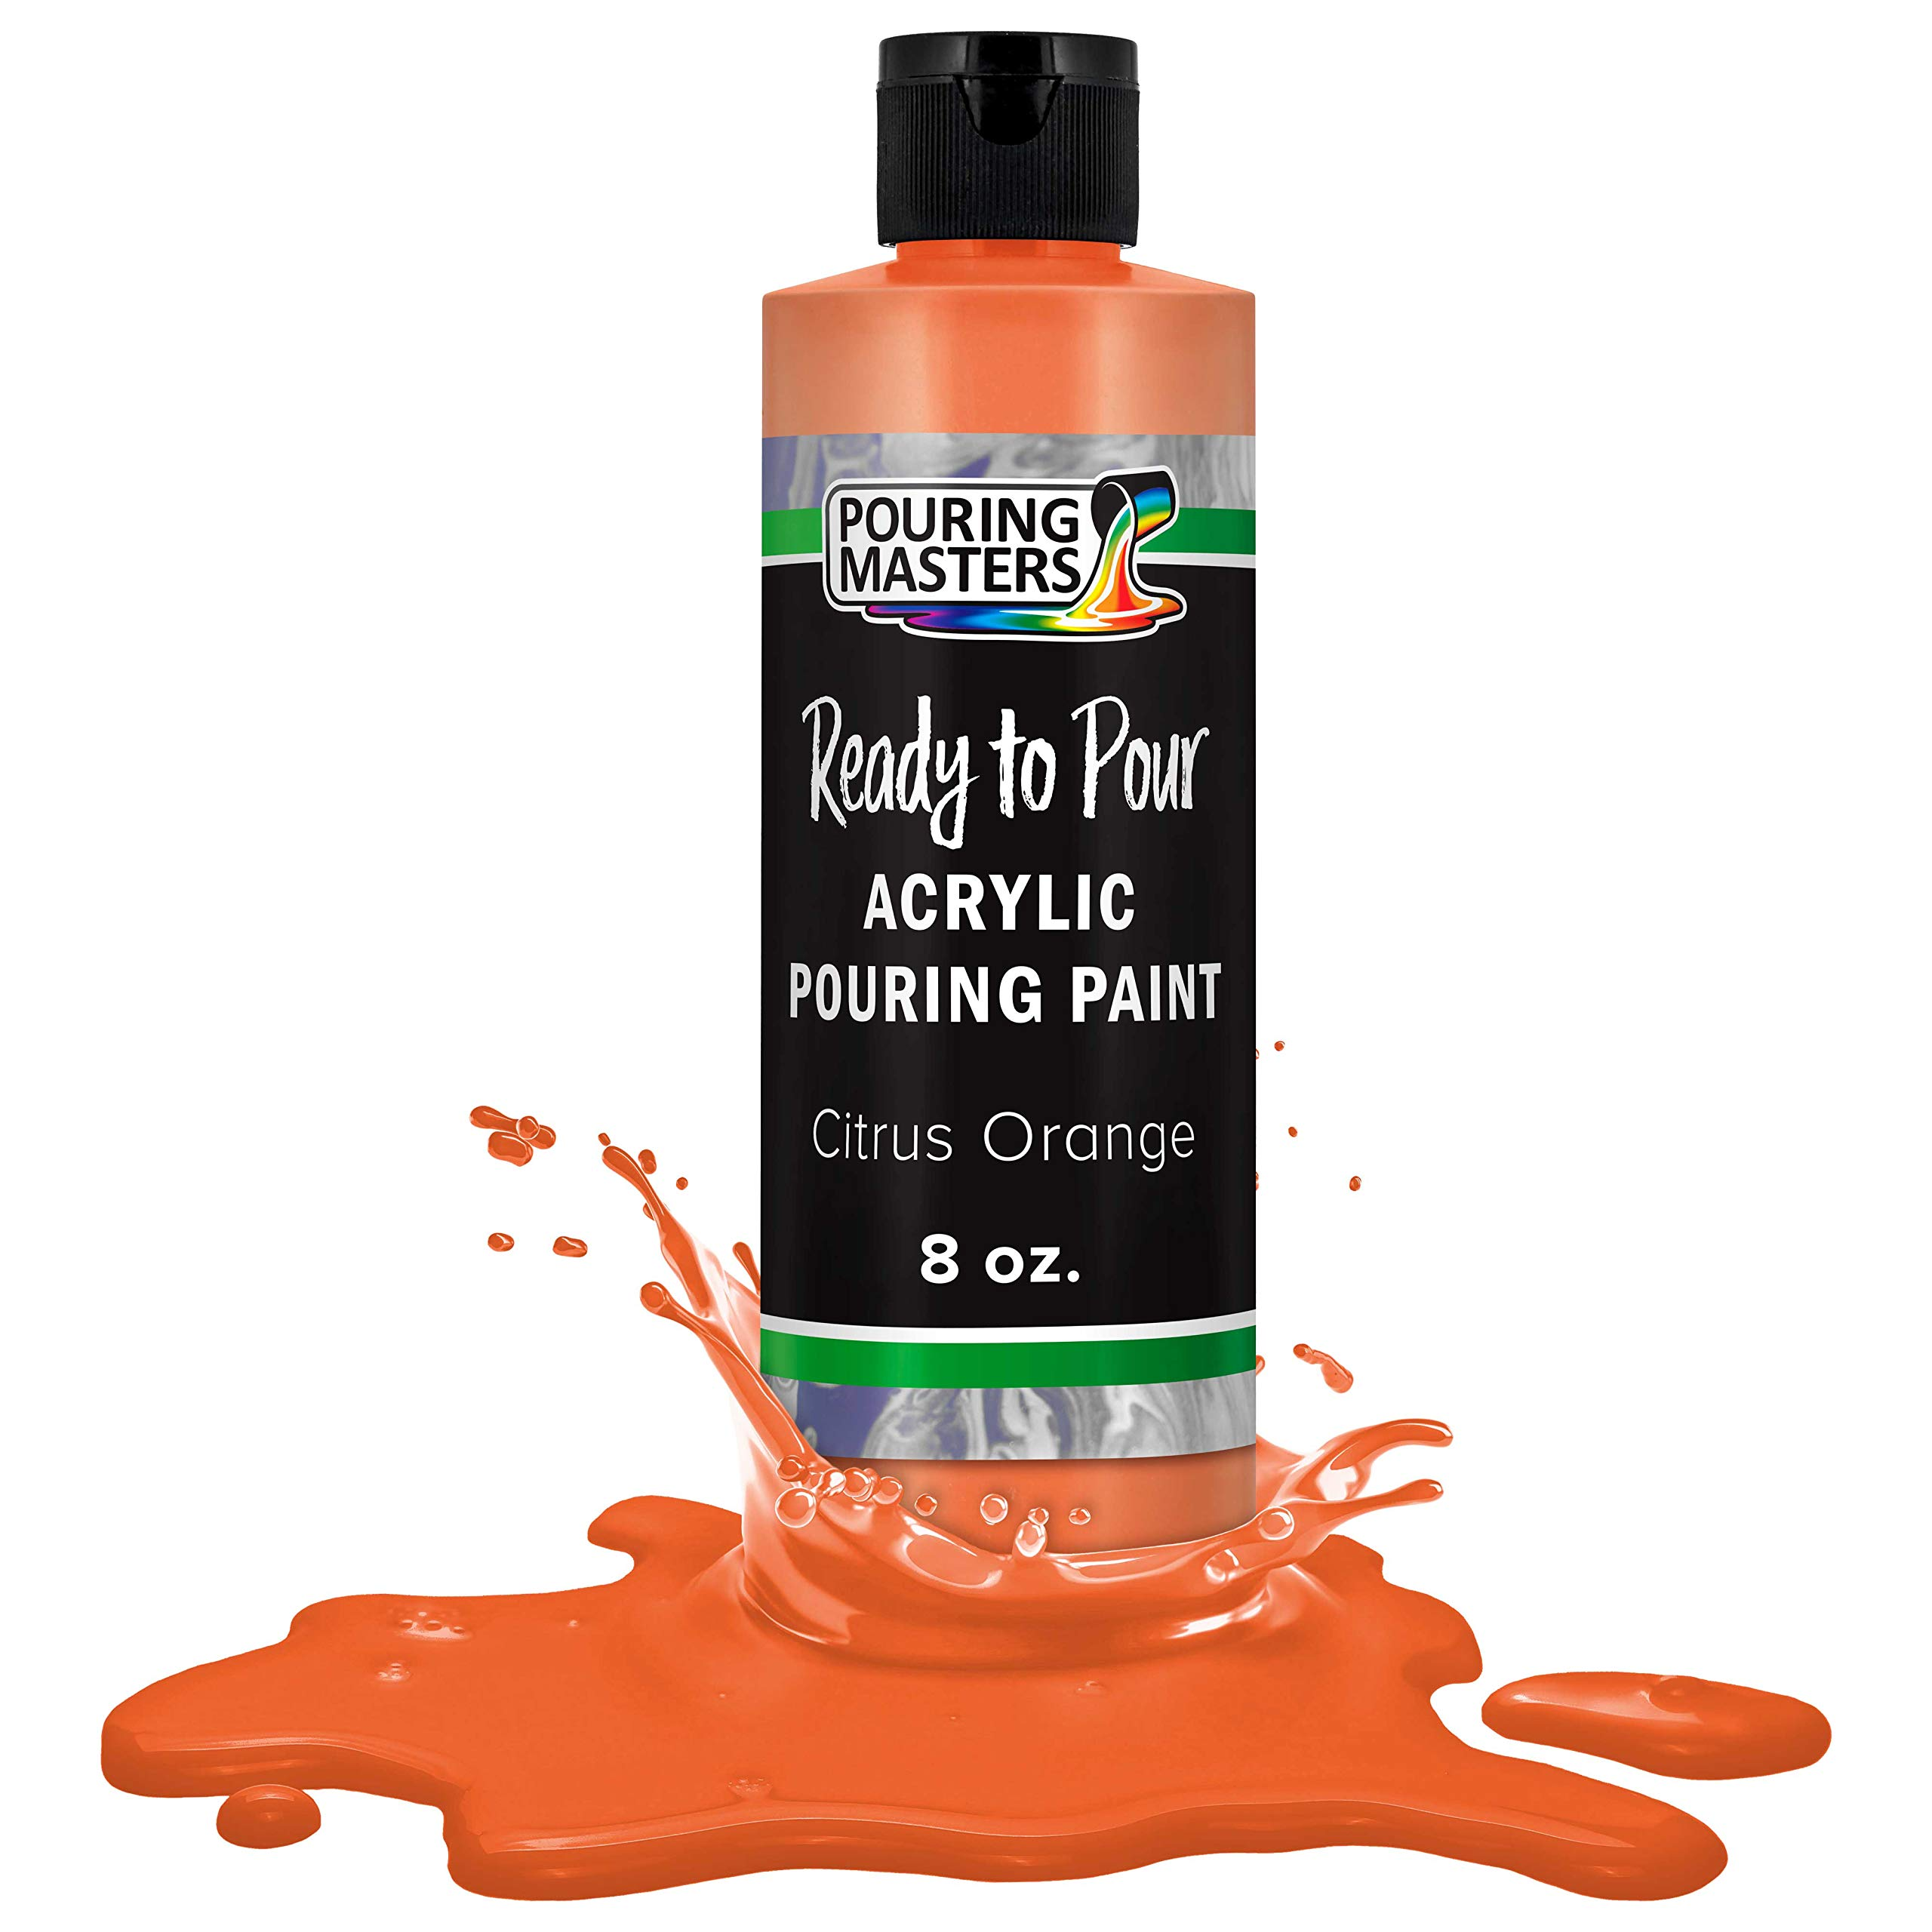 Pouring Masters Citrus Orange Acrylic Ready to Pour Pouring Paint – Premium 8-Ounce Pre-Mixed Water-Based - for Canvas, Wood, Paper, Crafts, Tile, Rocks and More